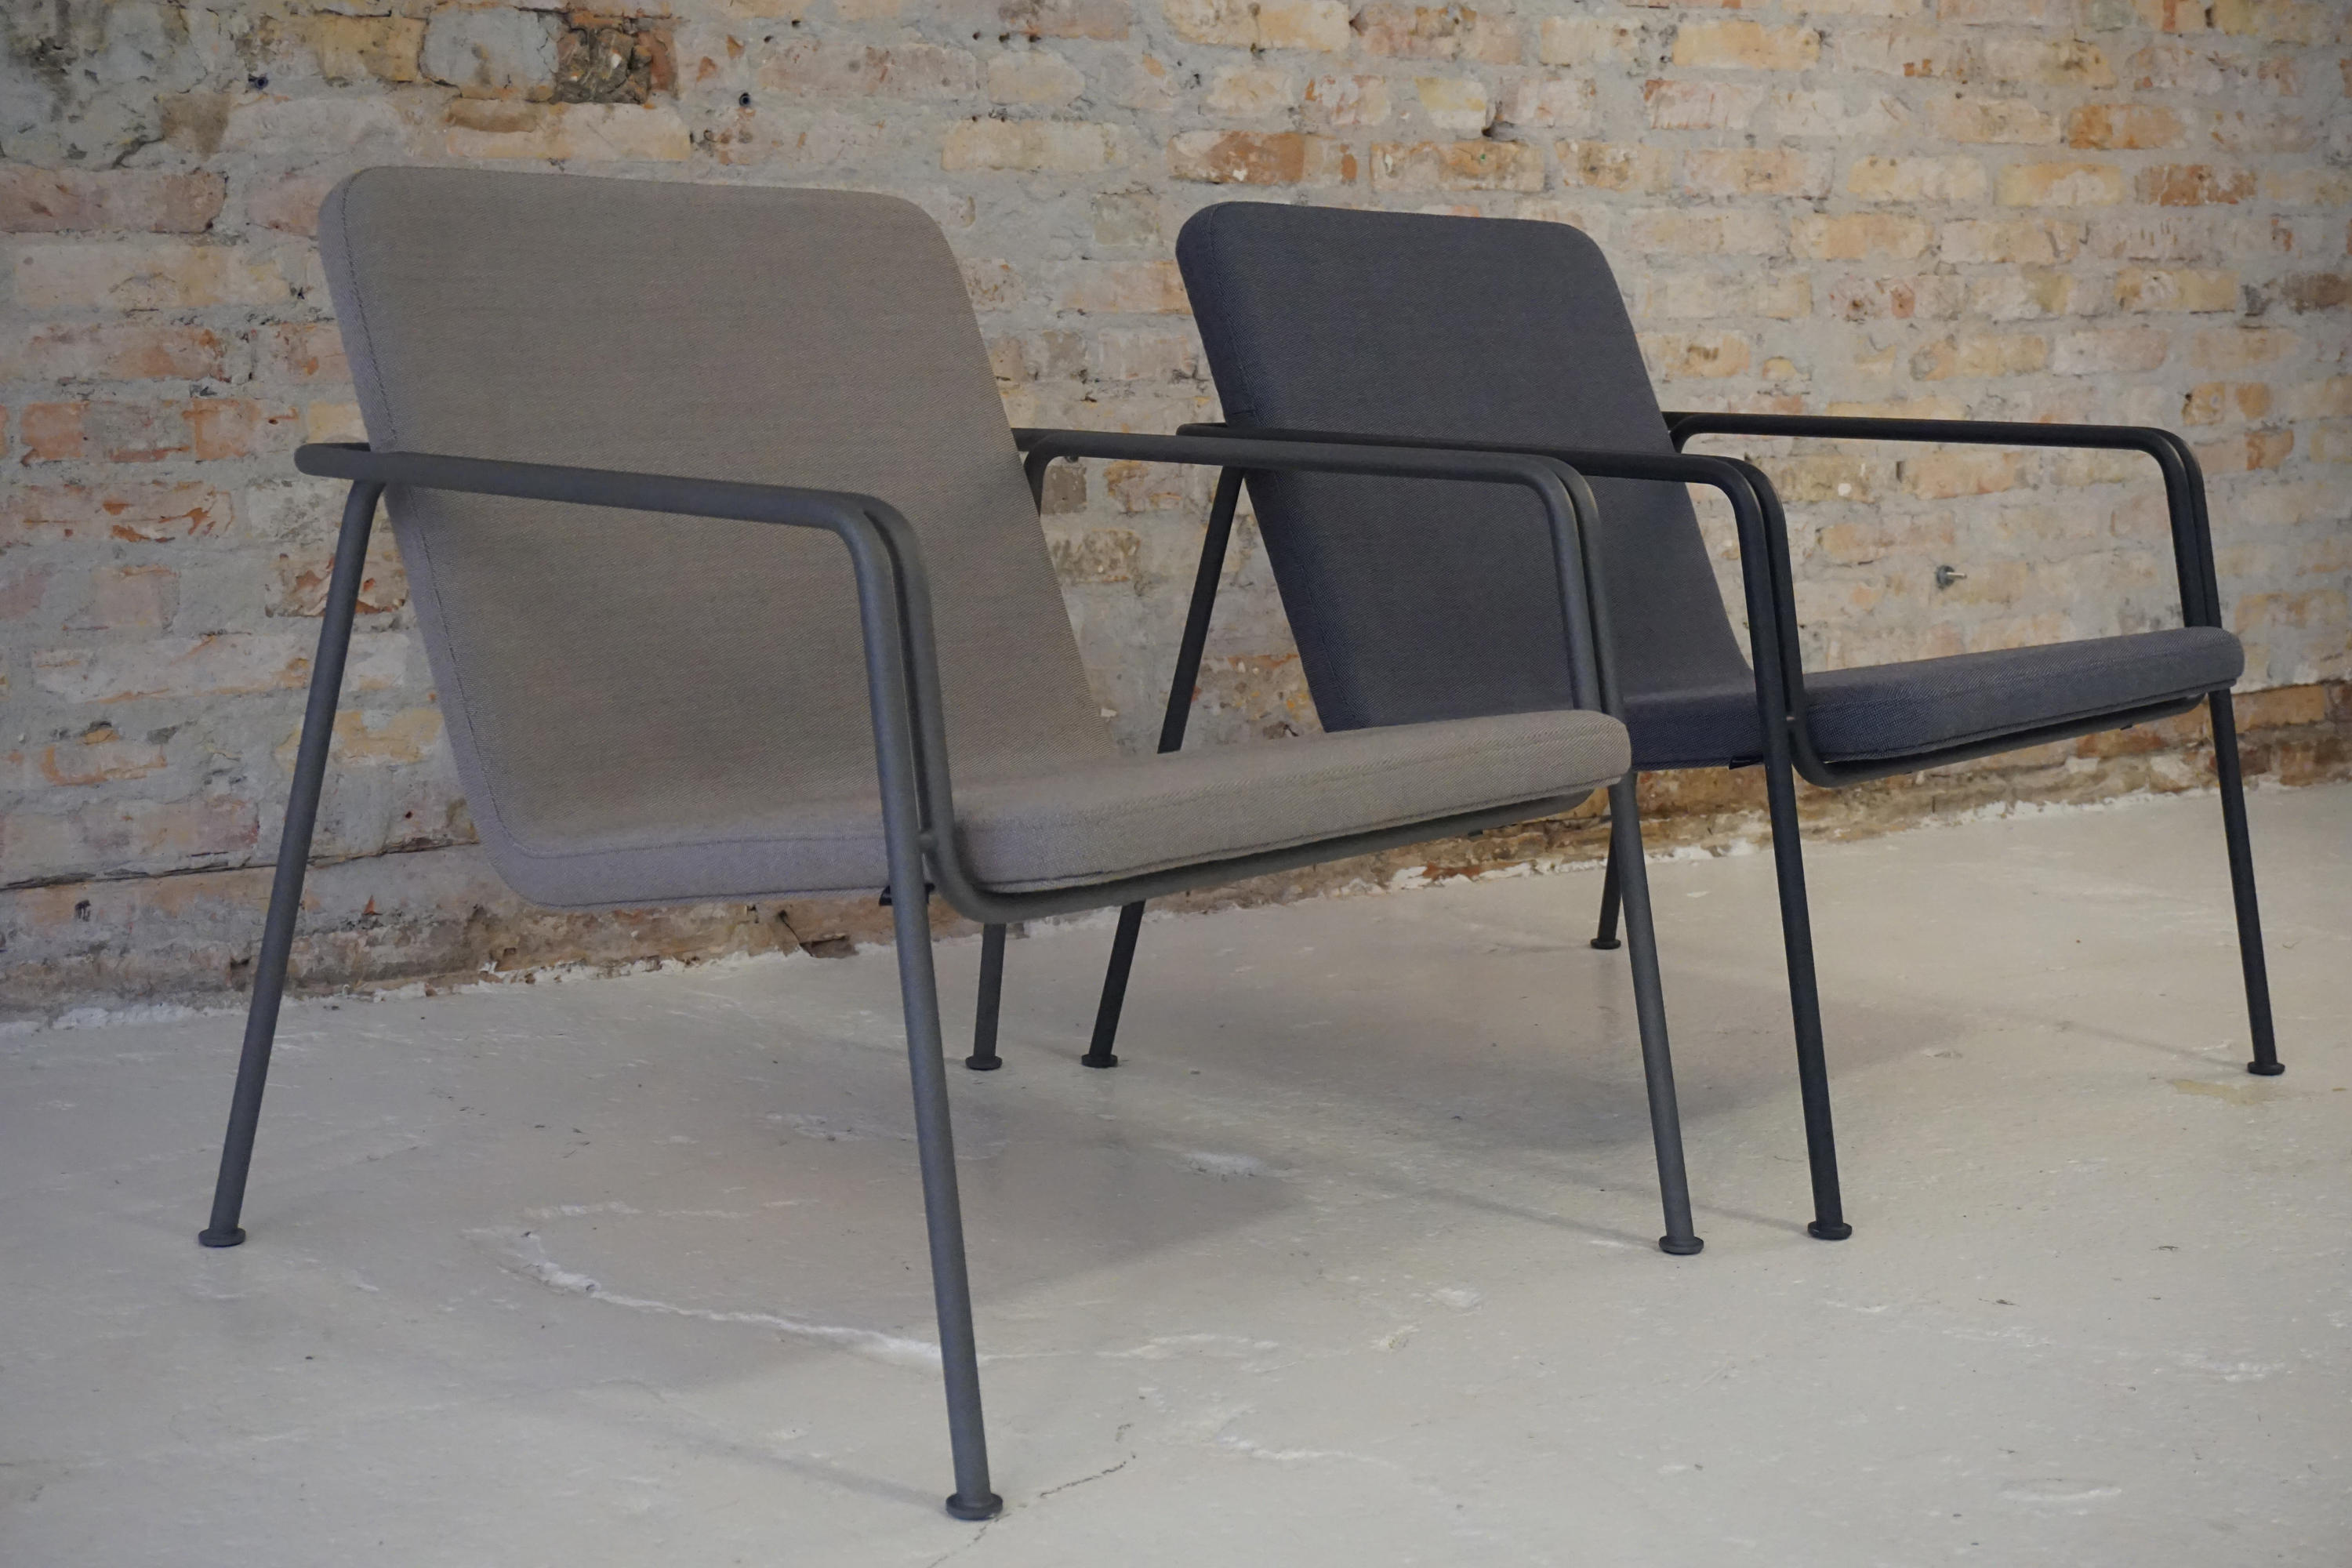 NEW BEST FRIEND LOUNGE CHAIR Lounge chairs from Wehlers